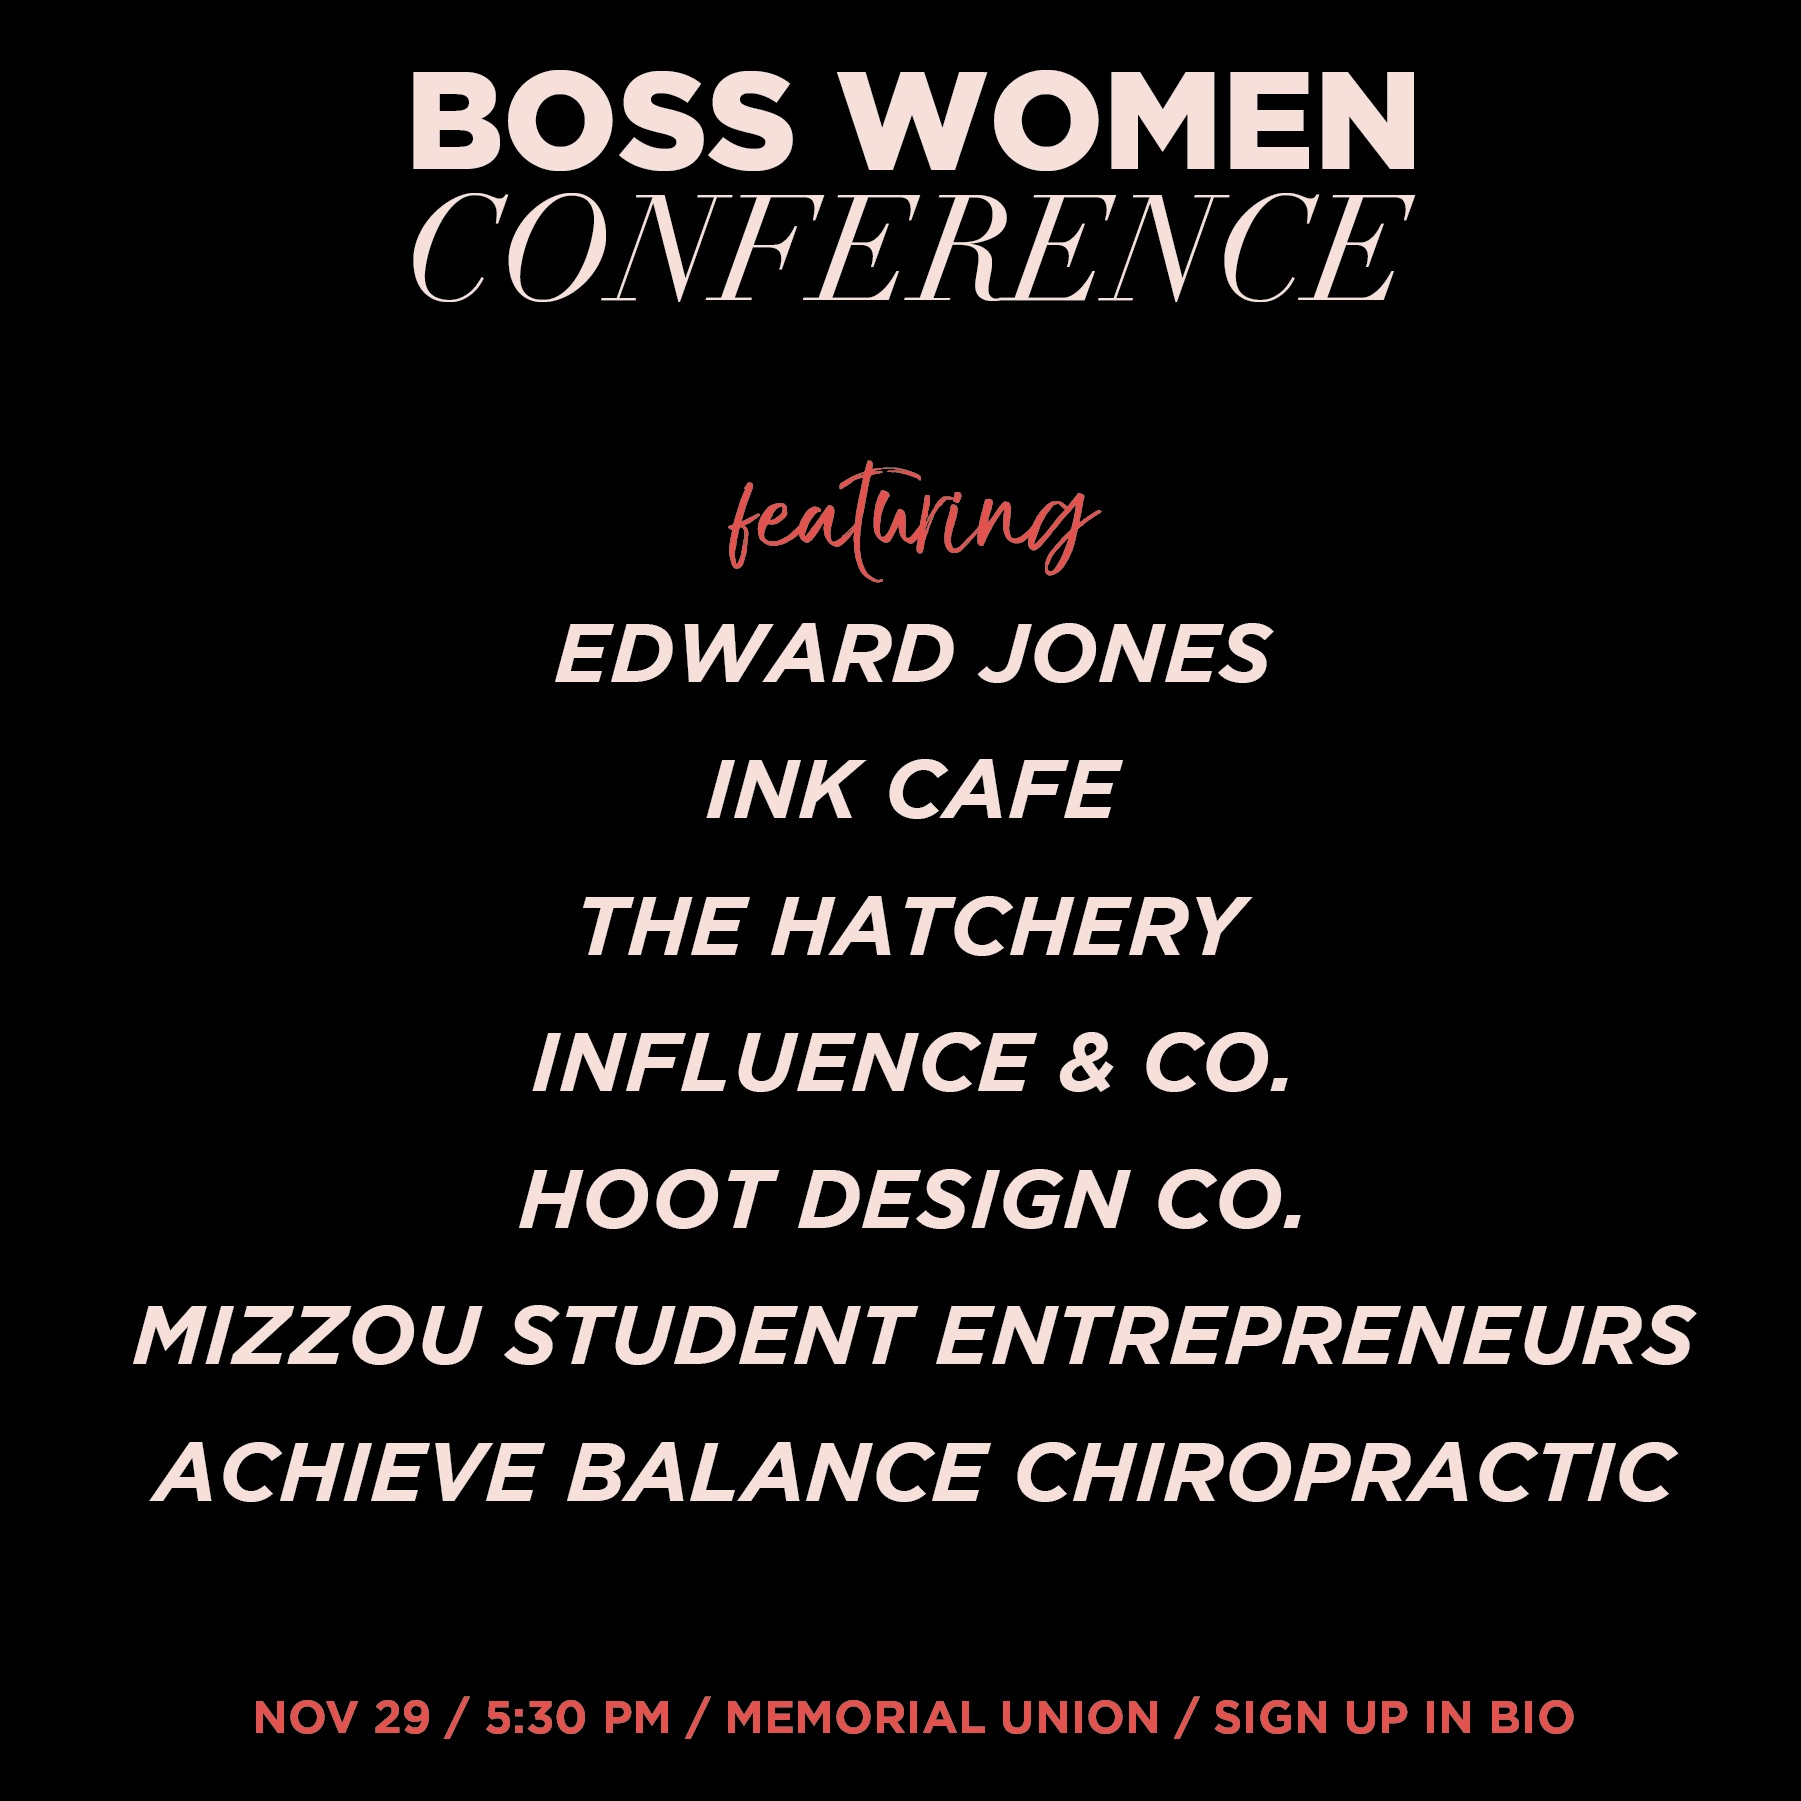 boss women list .jpg